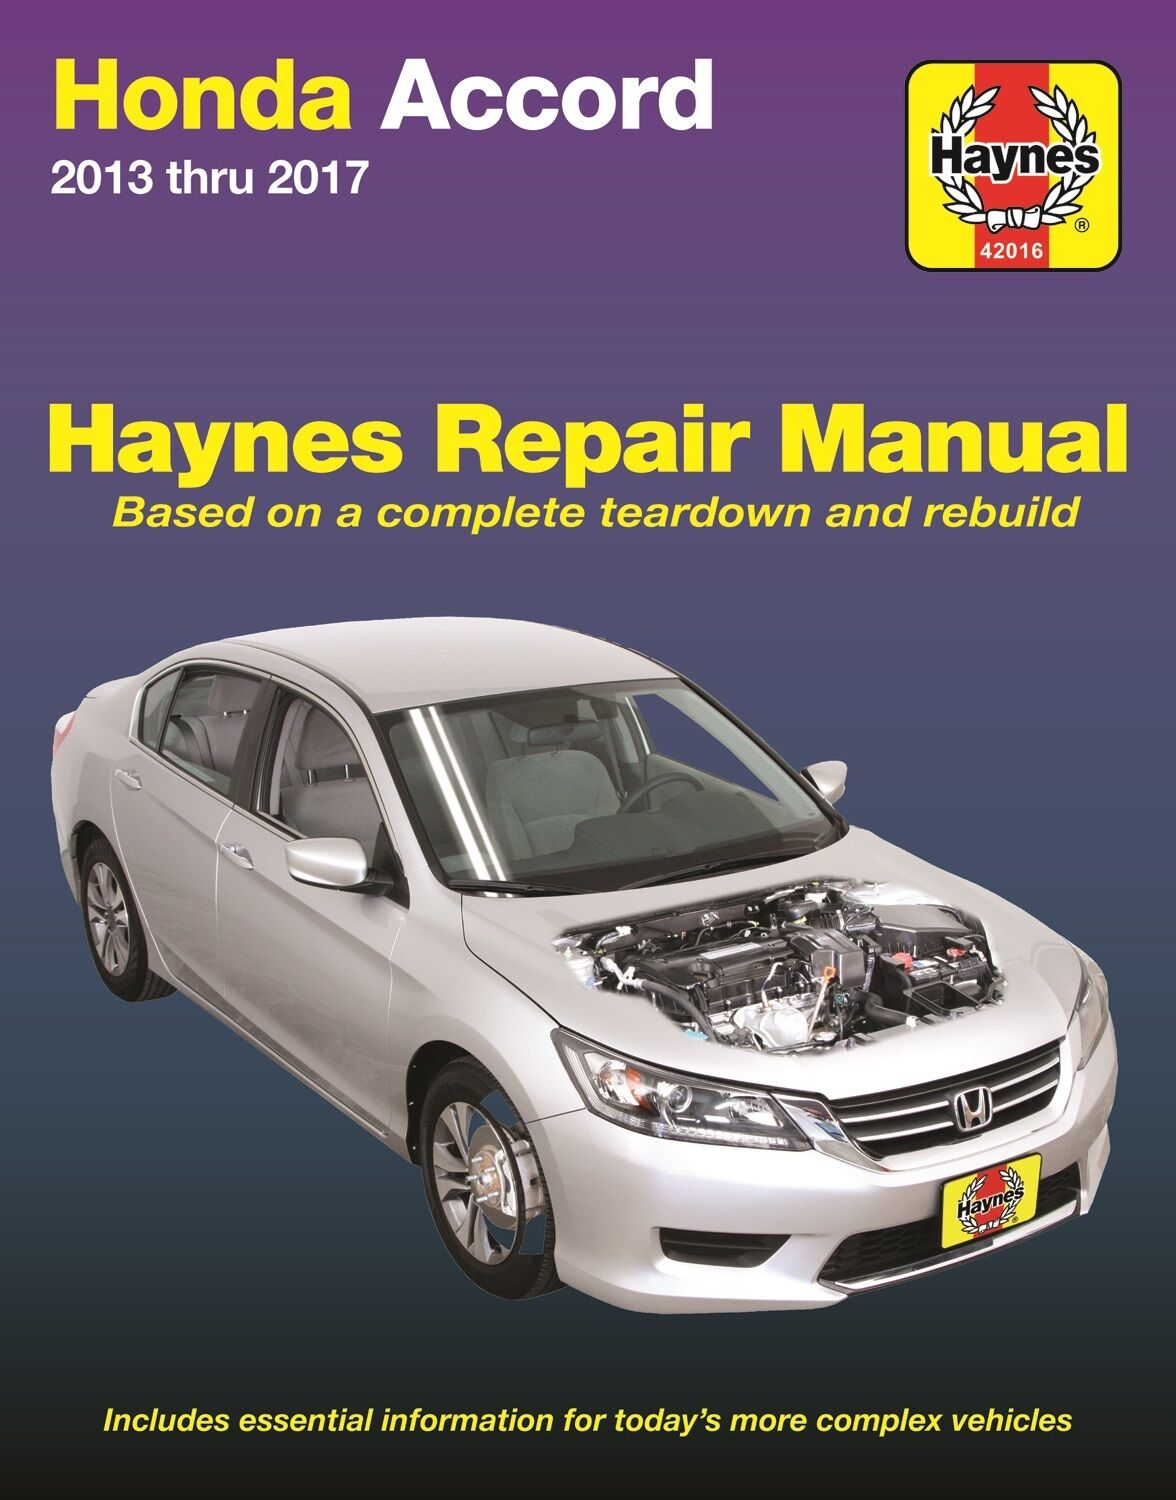 2013-2017 Honda Accord Haynes Repair Service Workshop Manual 9781620922583  1 of 1FREE Shipping See More